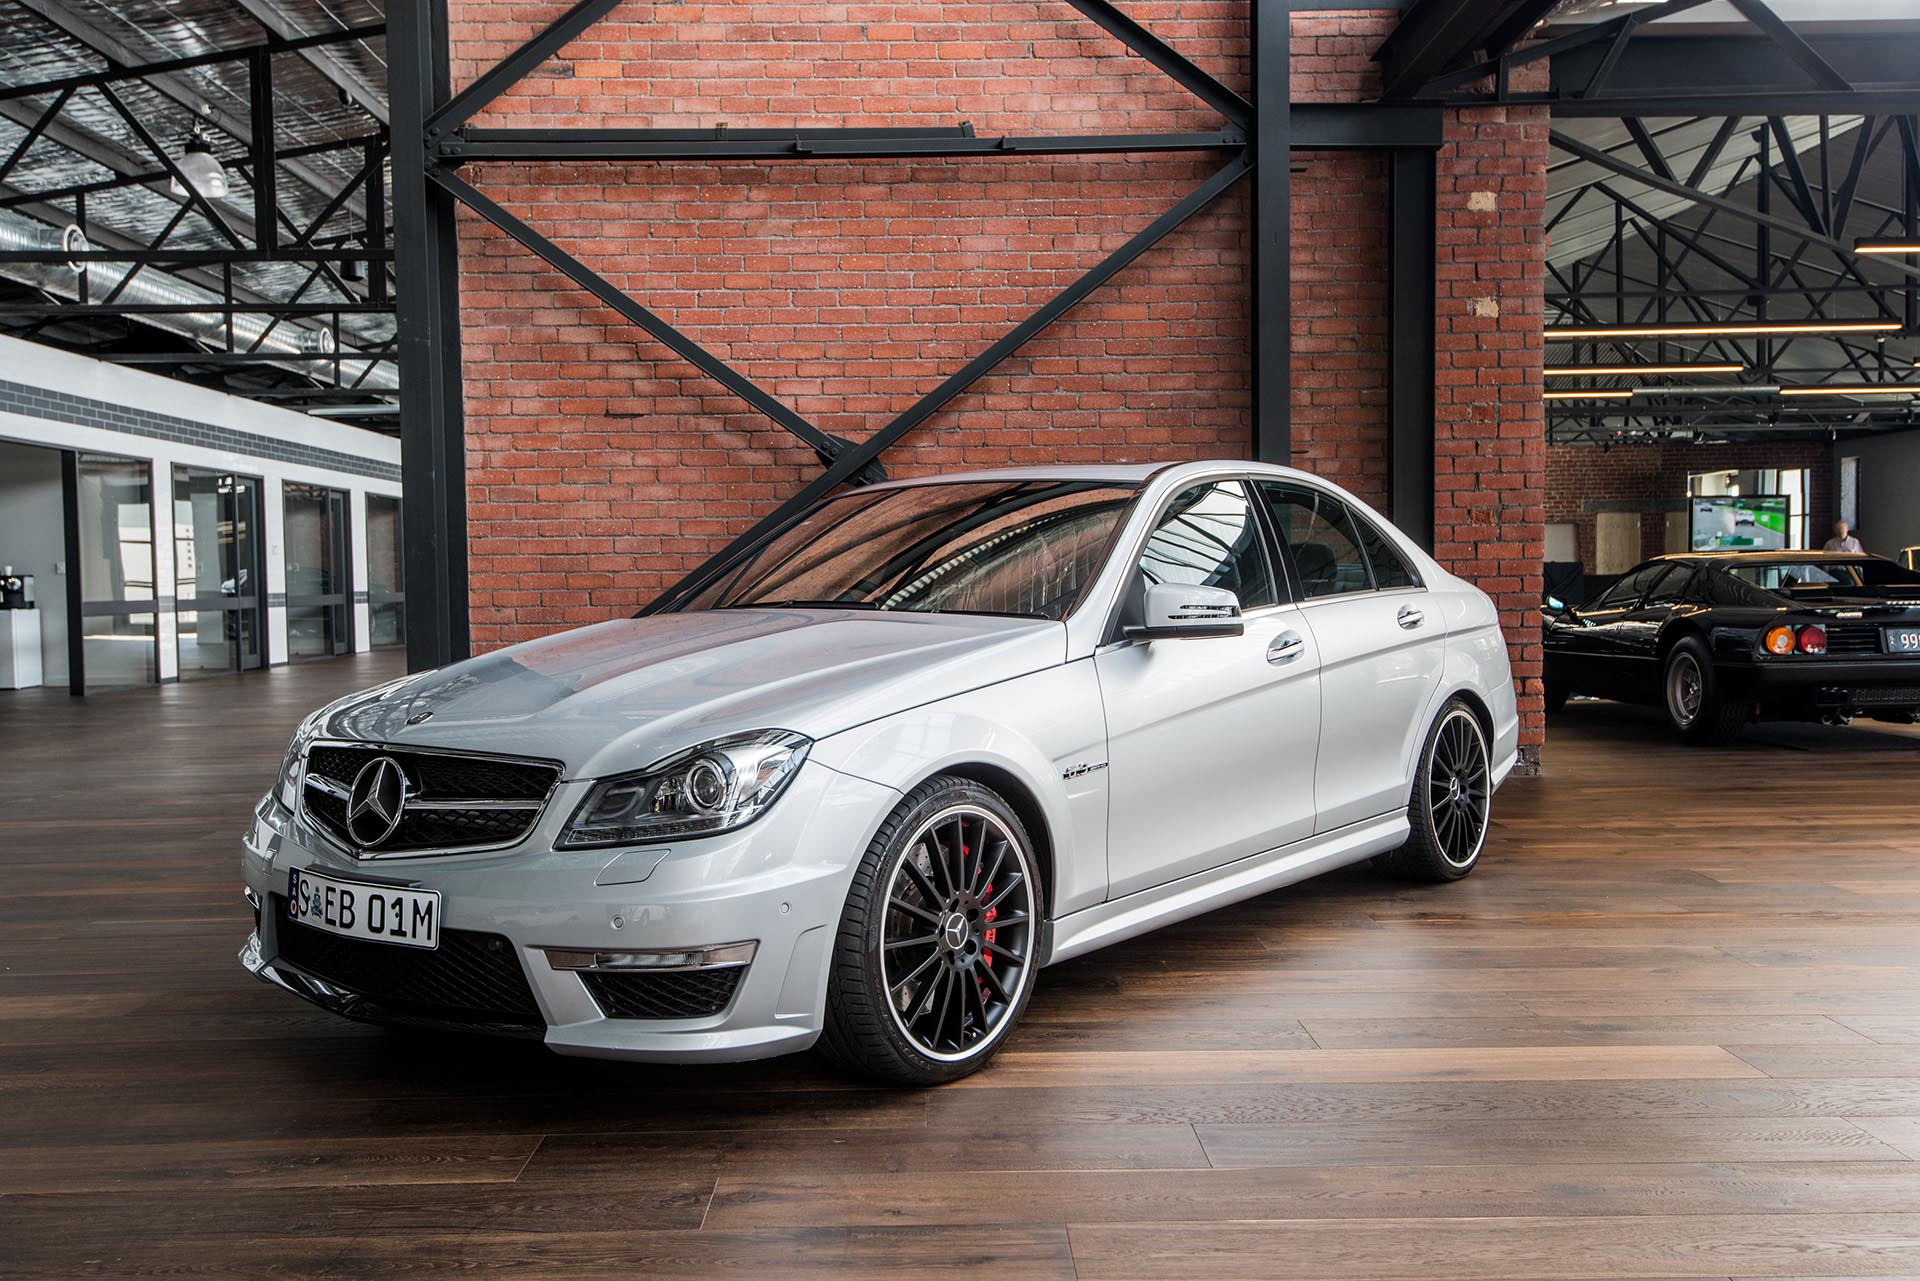 2012 Mercedes C63 AMG Performance